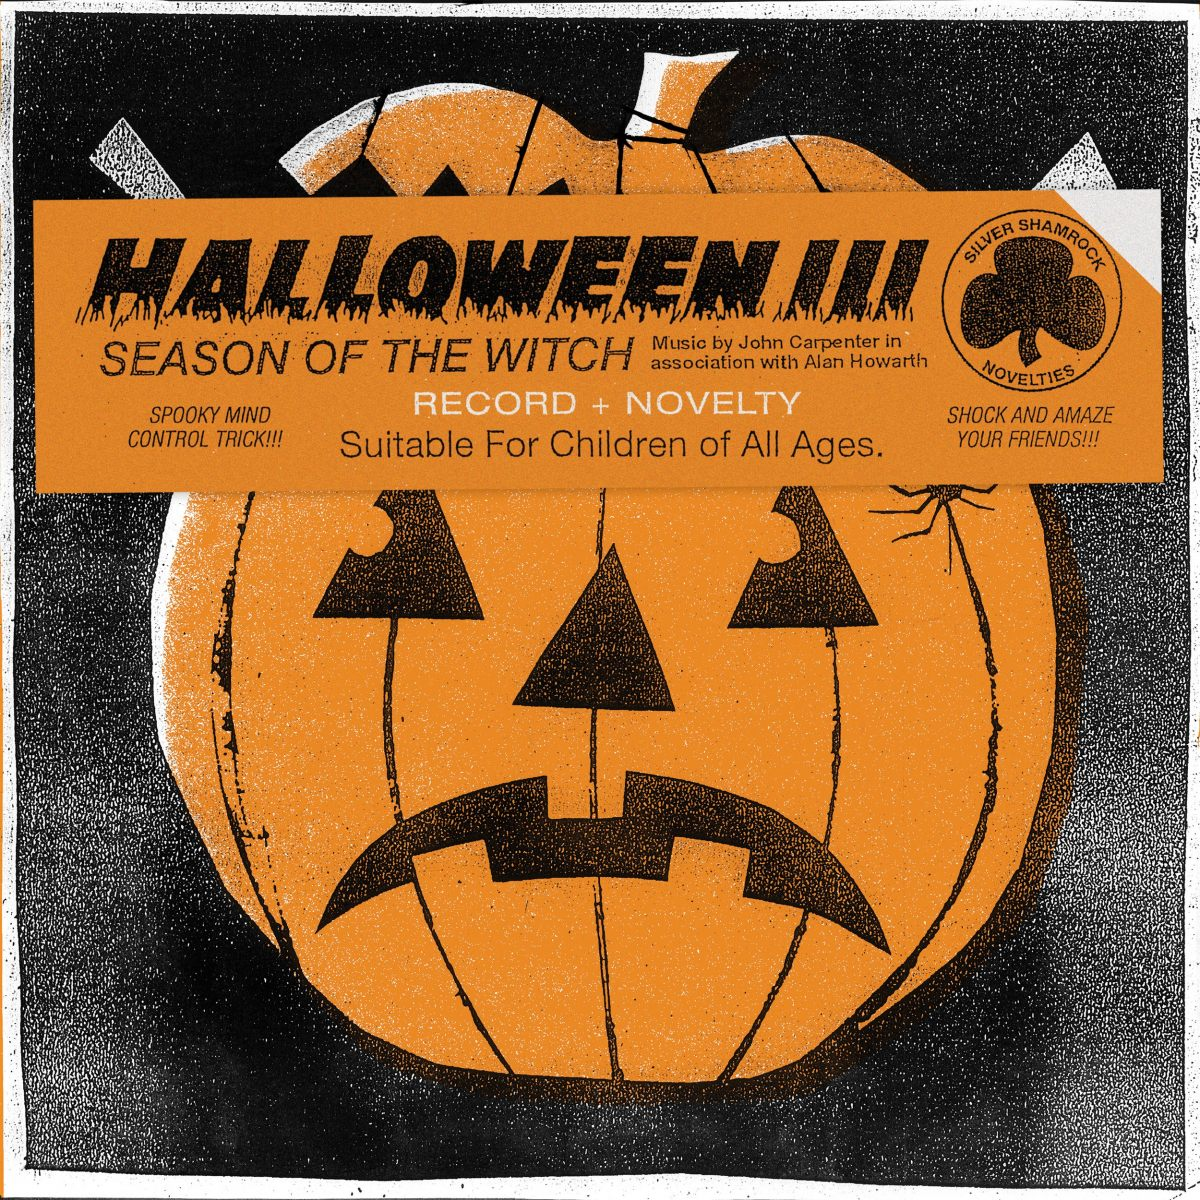 exclusive: here's our first look at mondo's halloween iii soundtrack